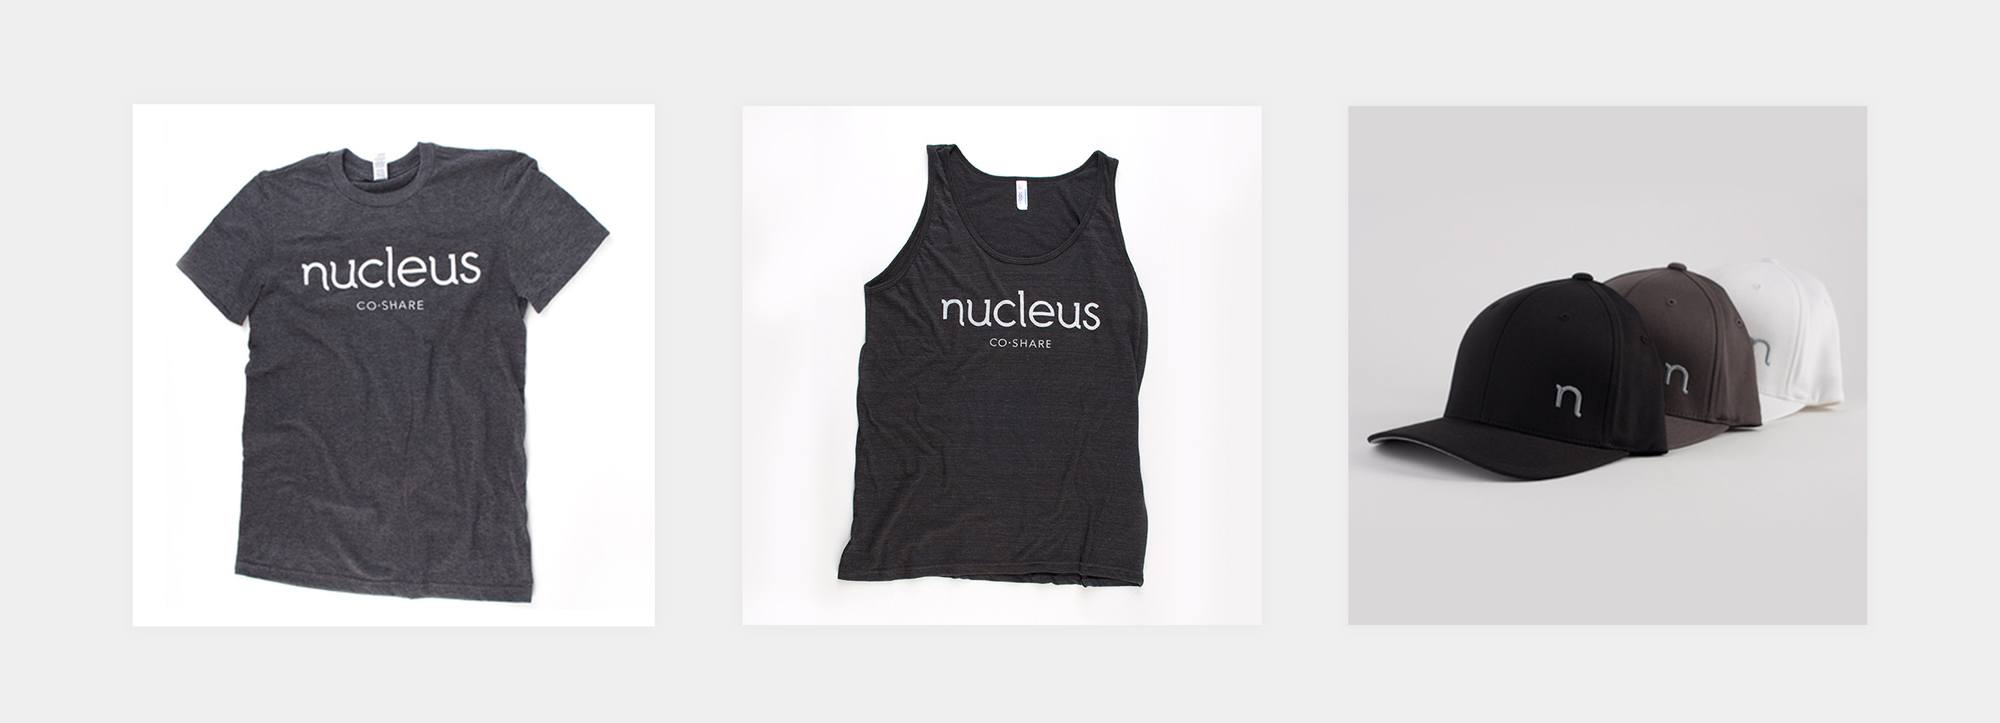 A collection of three photos showing apparel design for sale